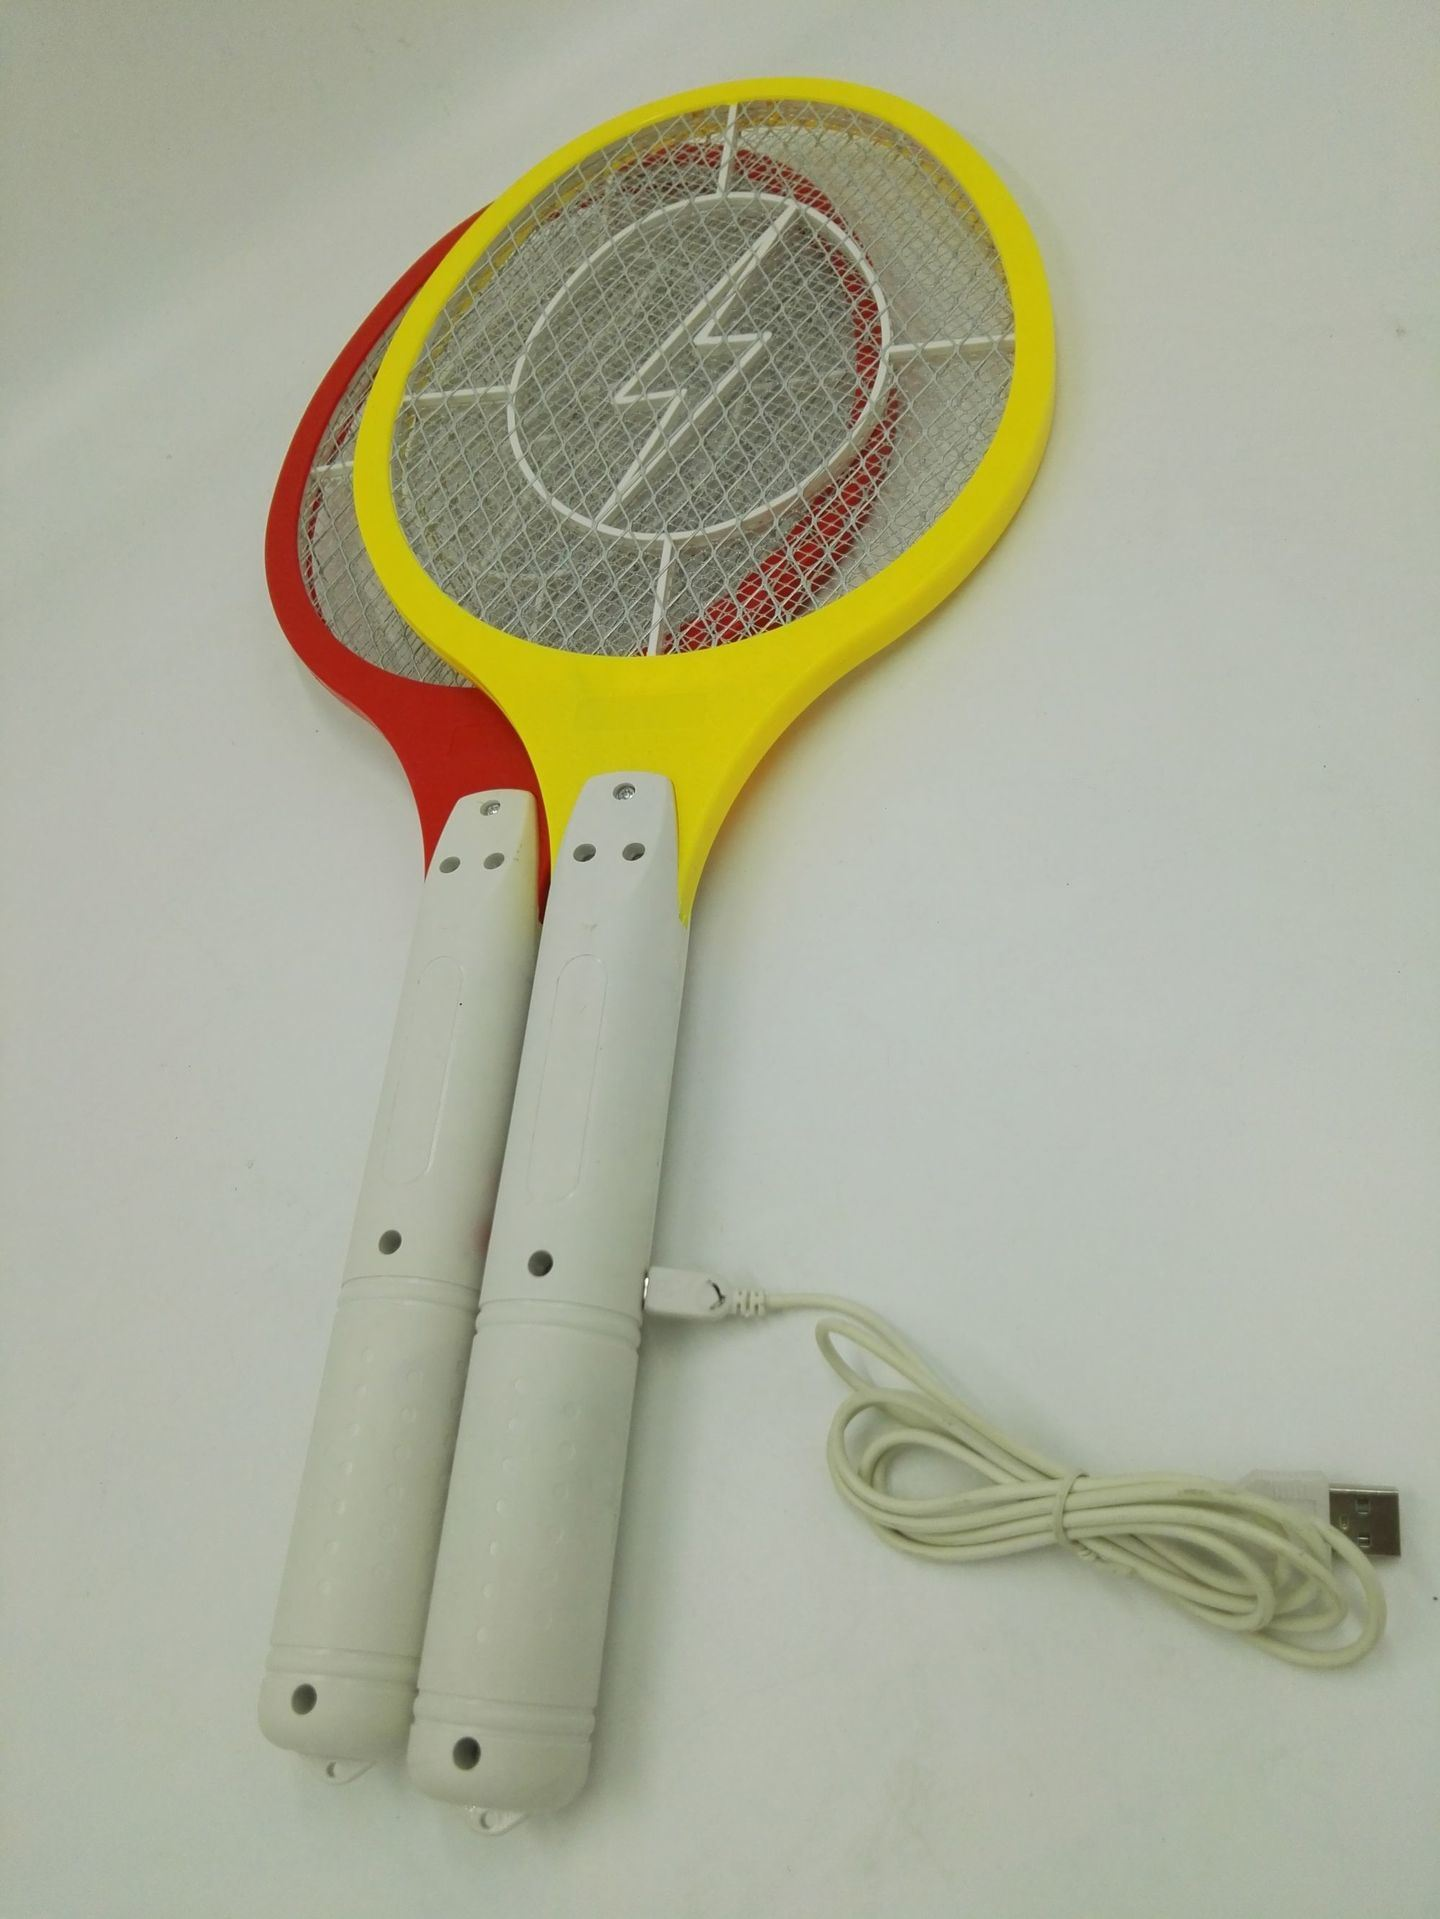 Swatter Bug Zapper Light Mosquito Trap Indoor Kill Fruit Flies Electronic Swatters Control Best for Camping pictures & photos